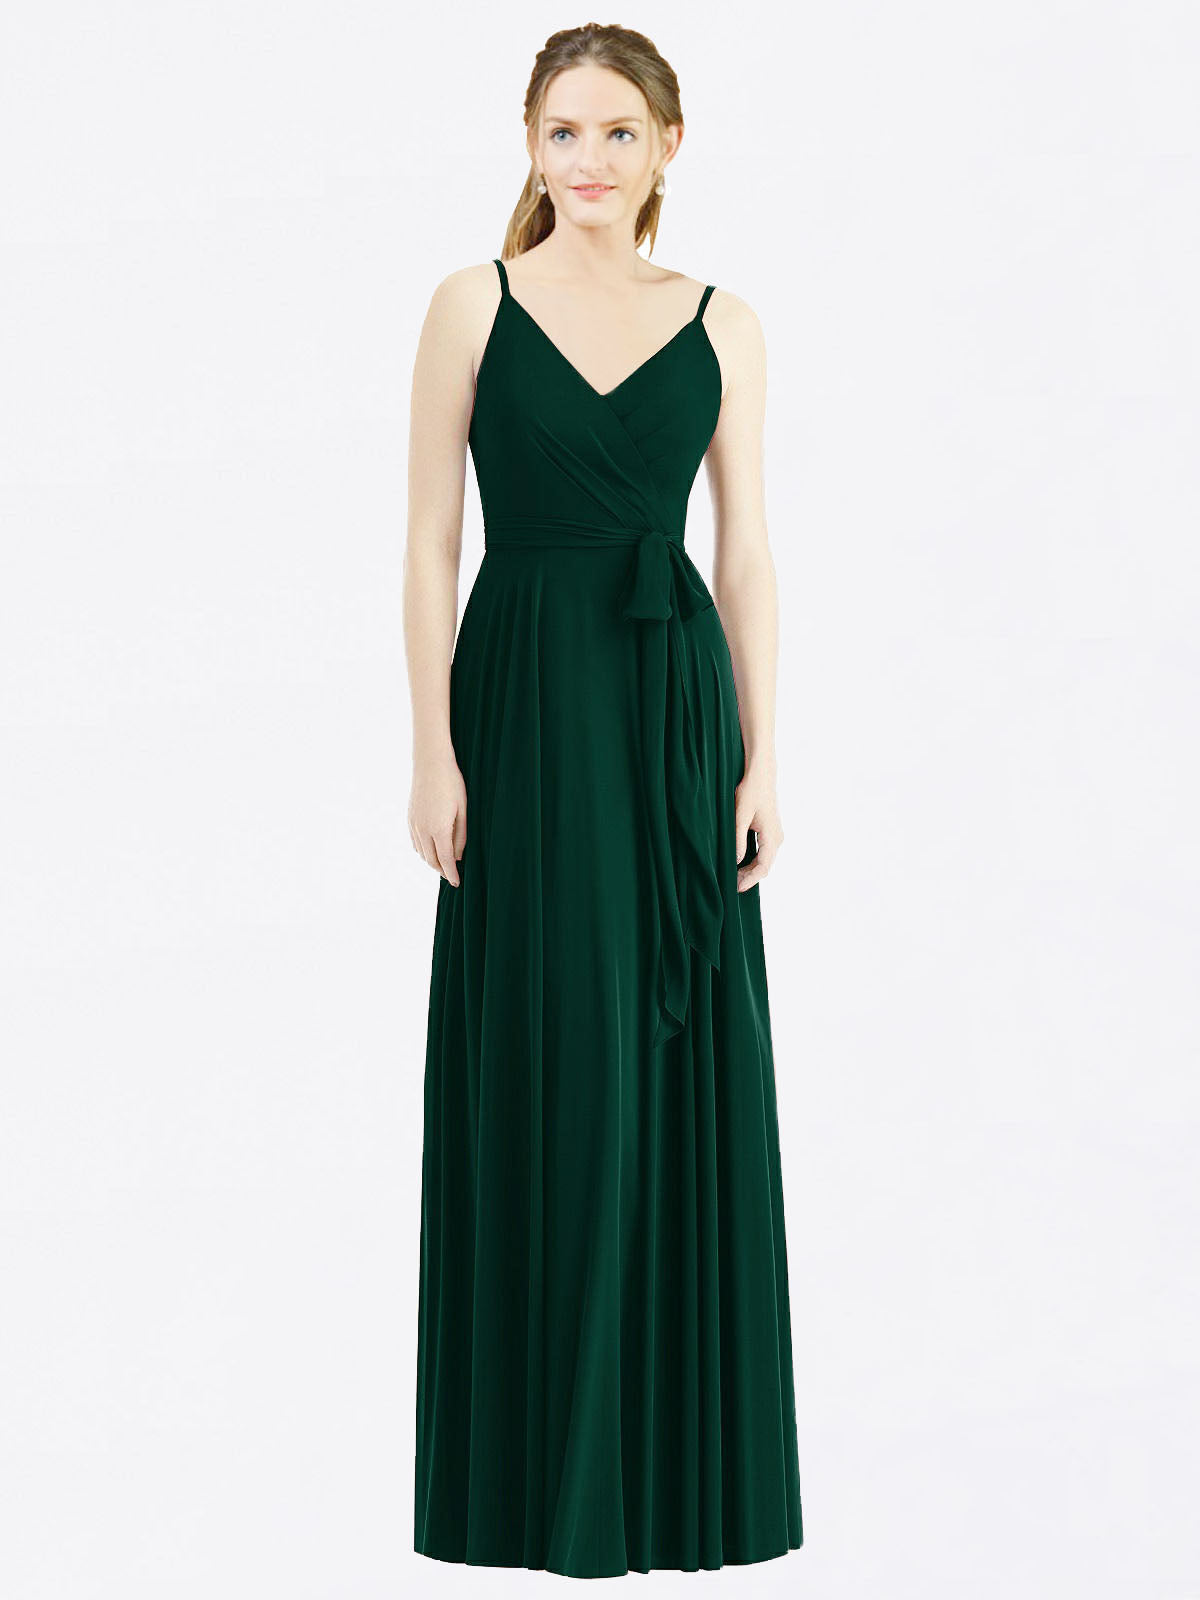 Long A-Line Spaghetti Straps, V-Neck Sleeveless Ever Green Chiffon Bridesmaid Dress Madilyn